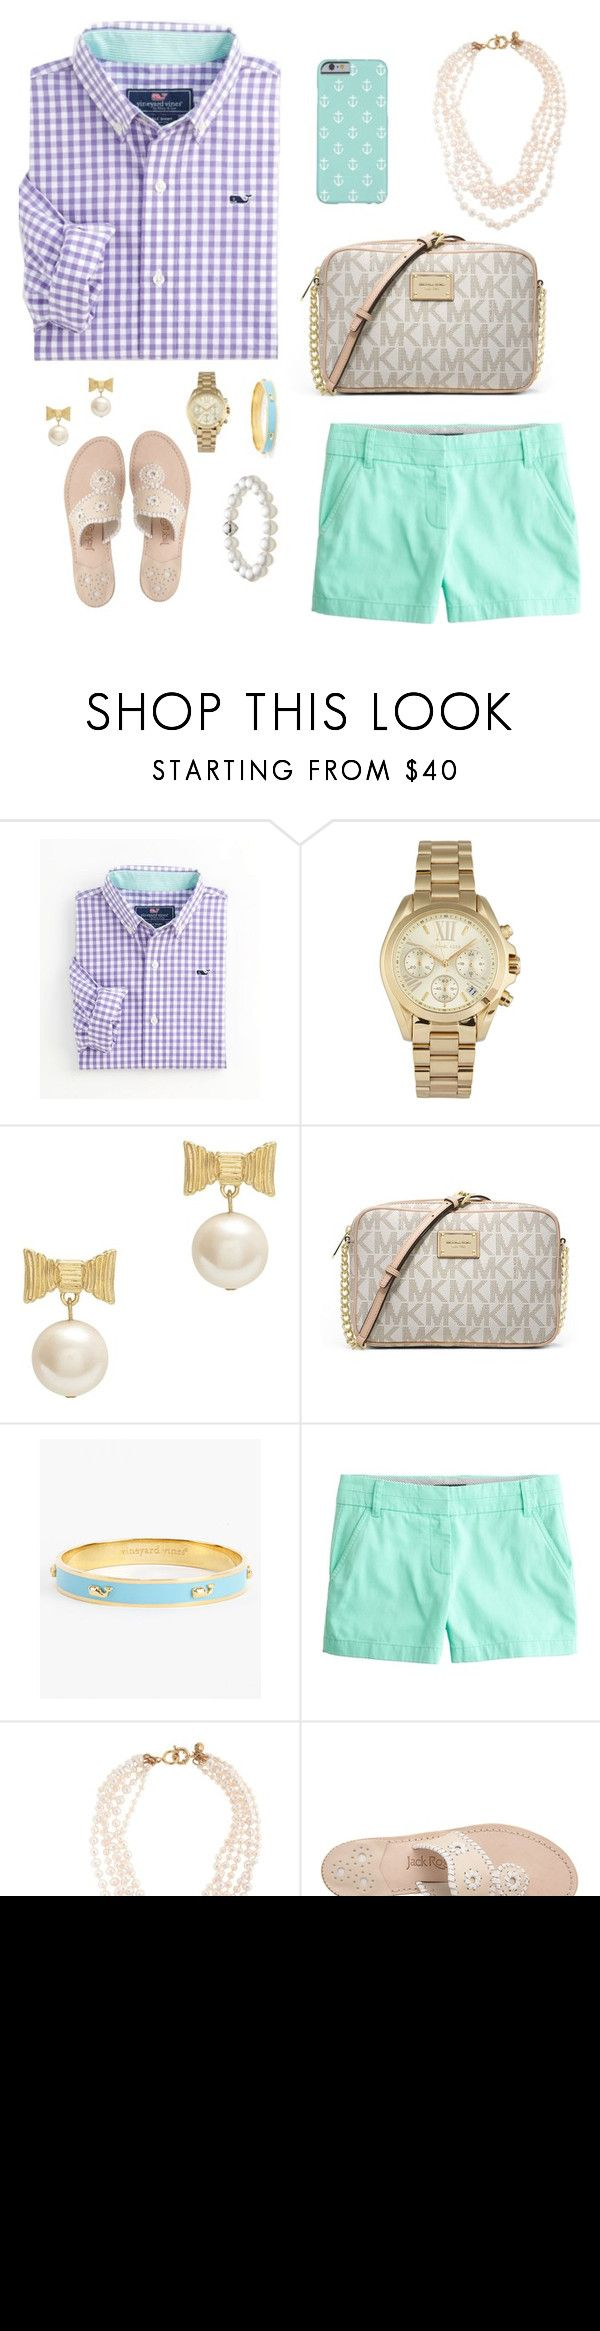 Preppy and classy✨ by prep29 ❤ liked on Polyvore featuring Vineyard Vines, Michael Kors, Kate Spade, MICHAEL Michael Kors, J.Crew, Jack Rogers and TARA Pearls